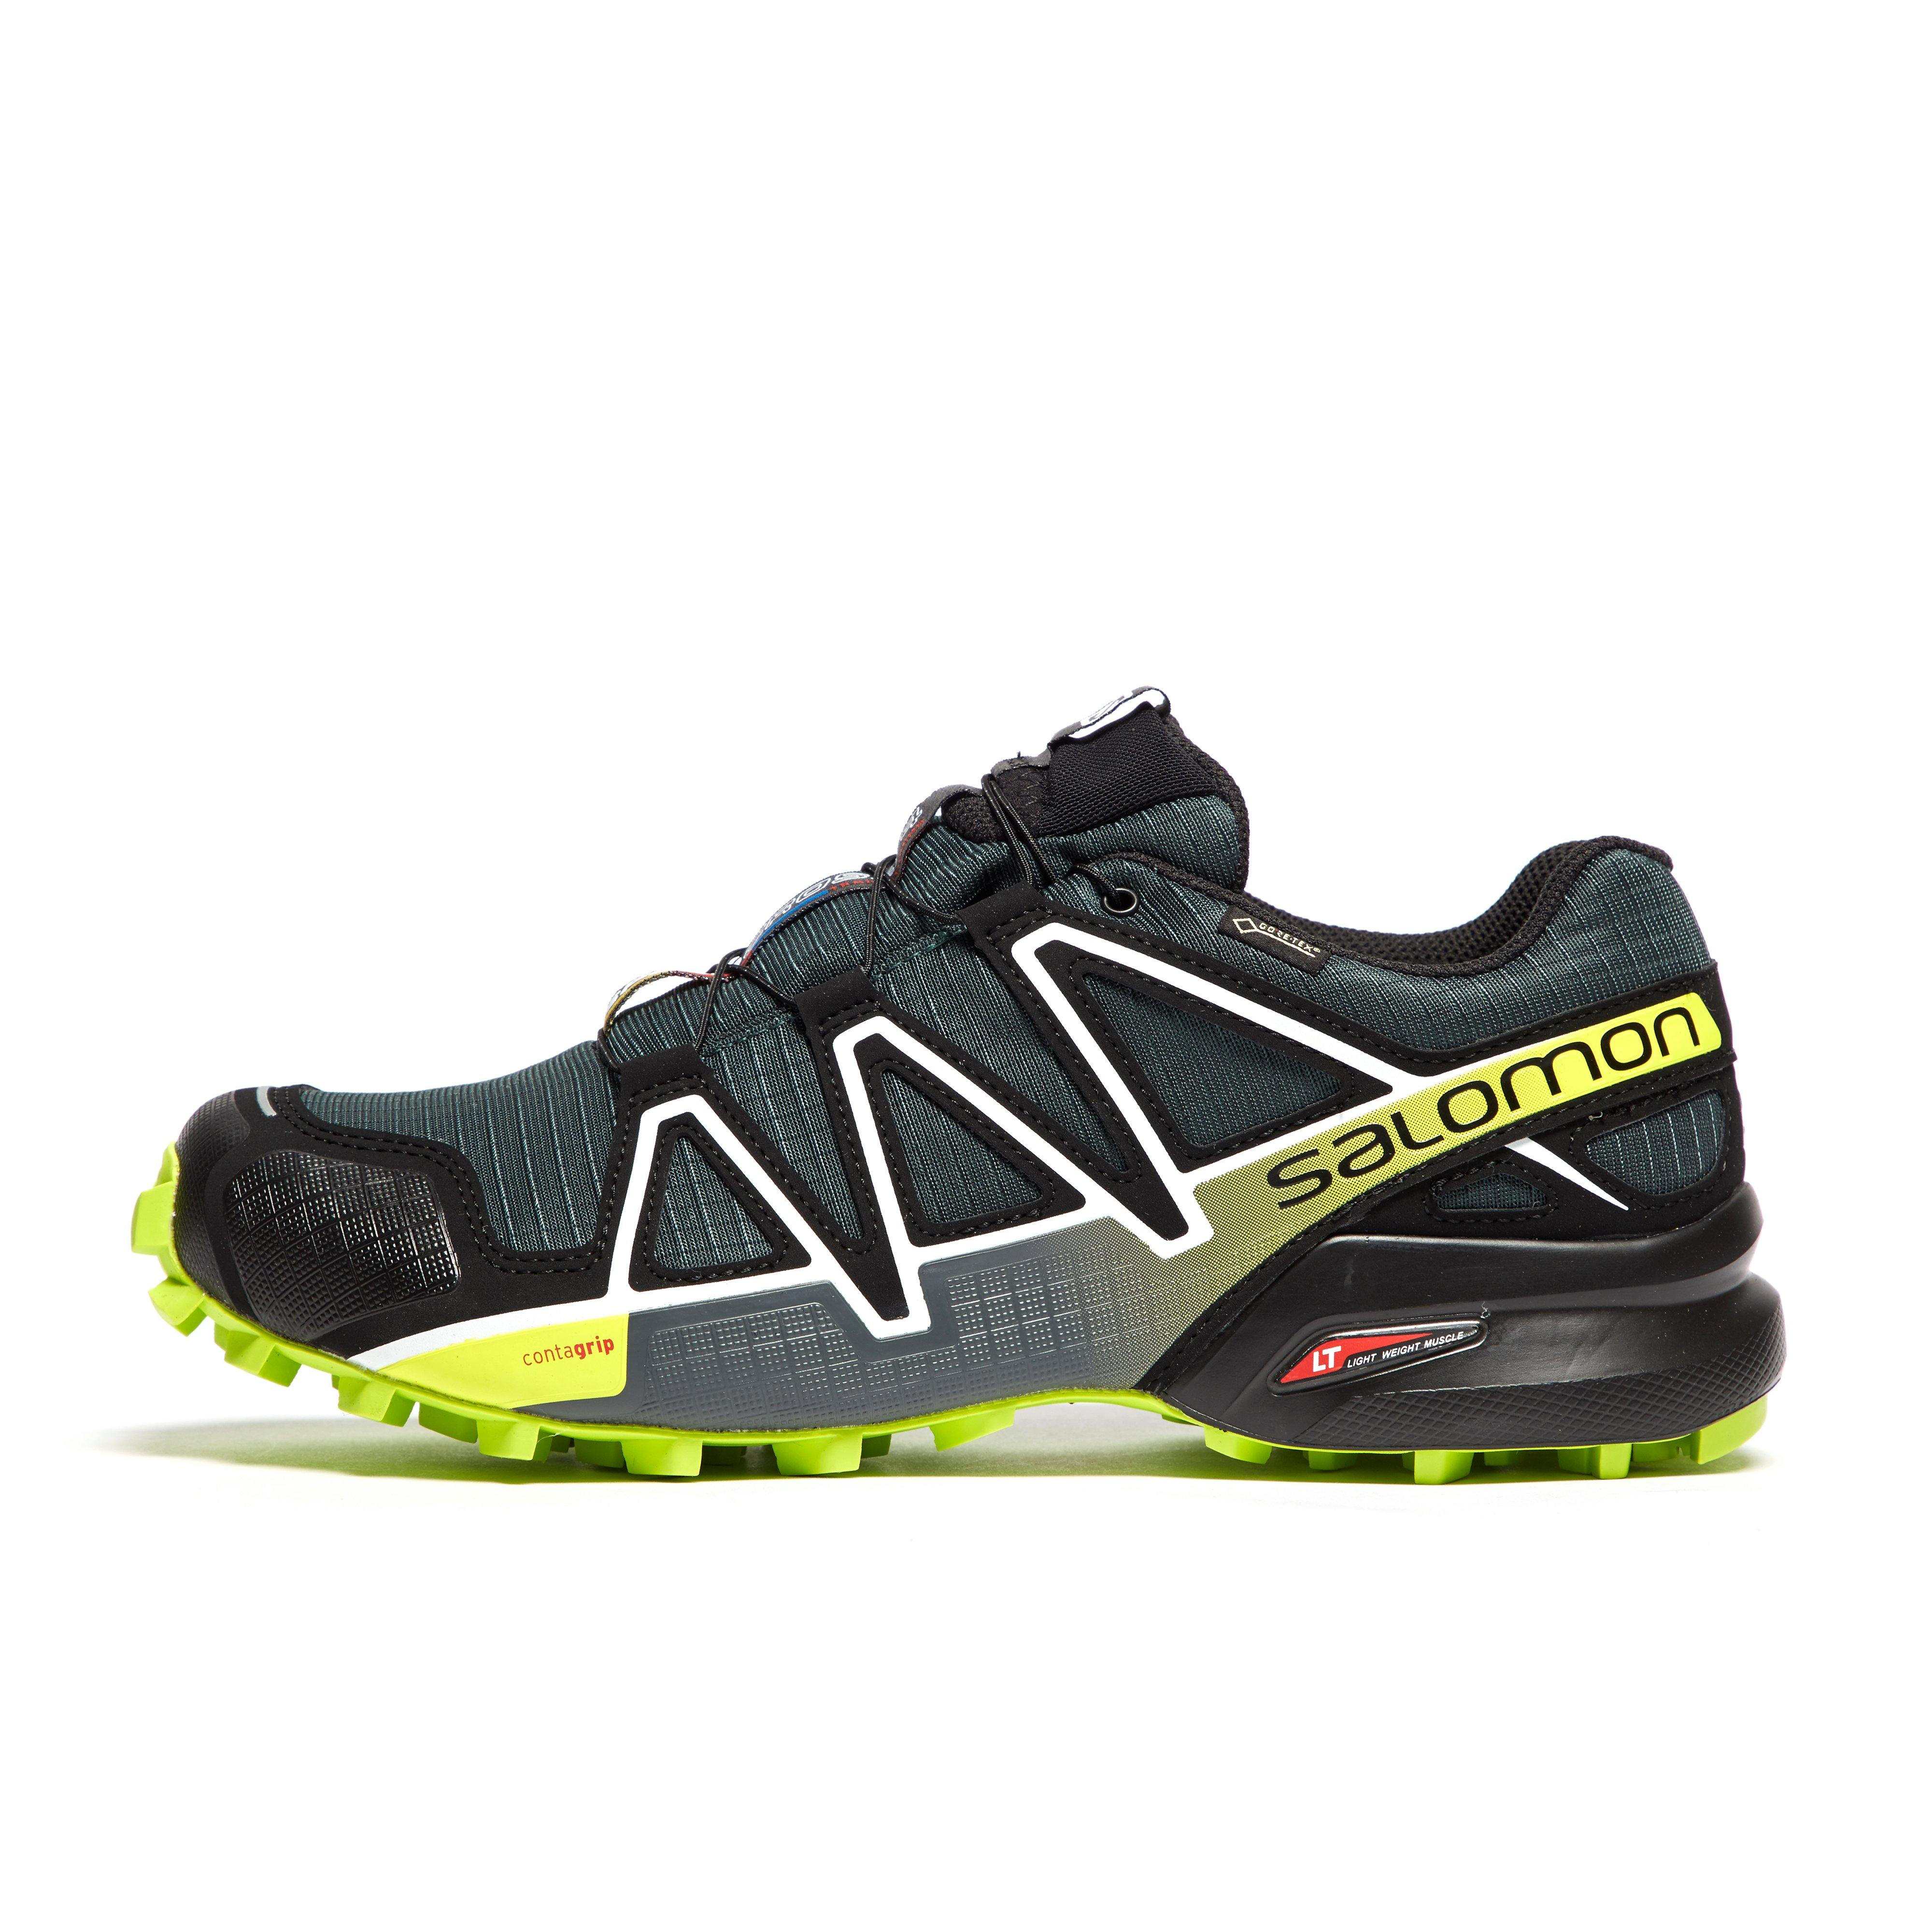 new product ae389 47f0f Details about Salomon Speedcross 4 GTX Men s Trail Running Shoes